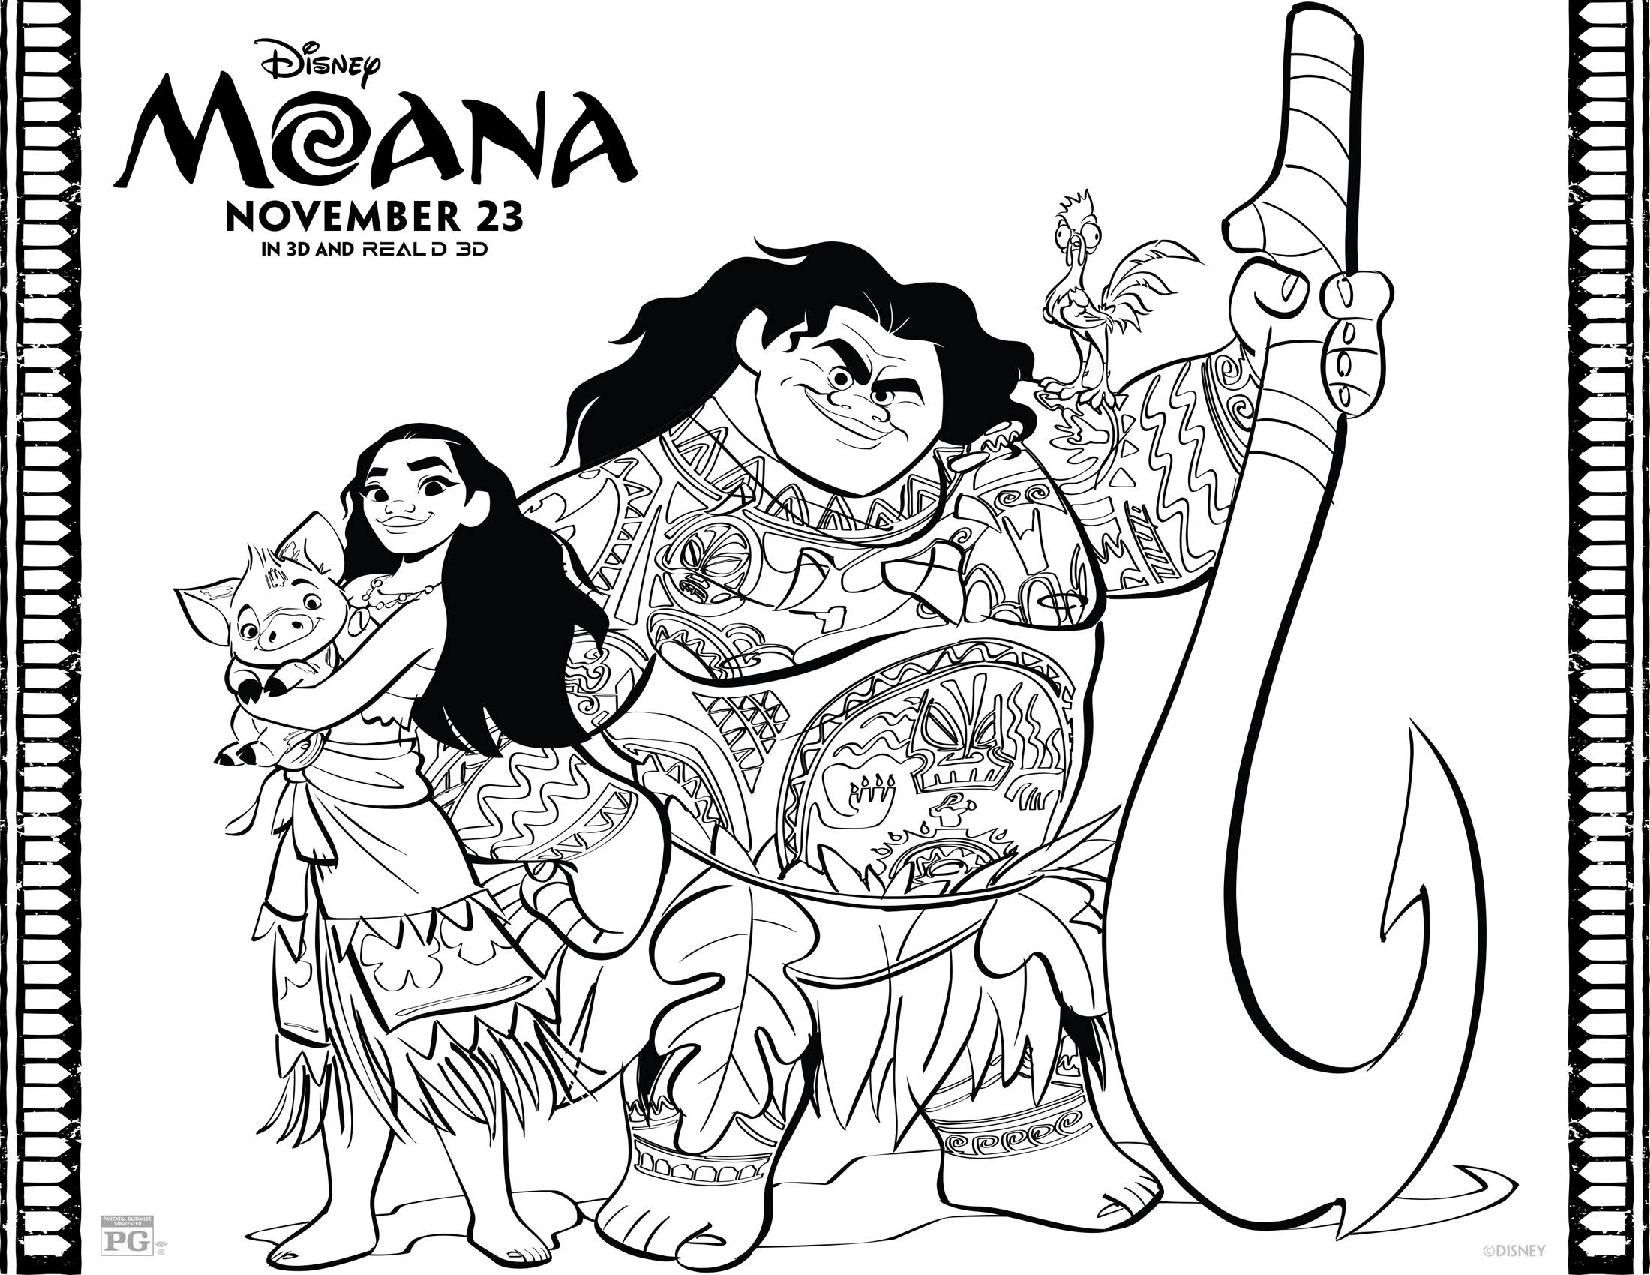 Download FREE Moana Coloring Pages and games from the